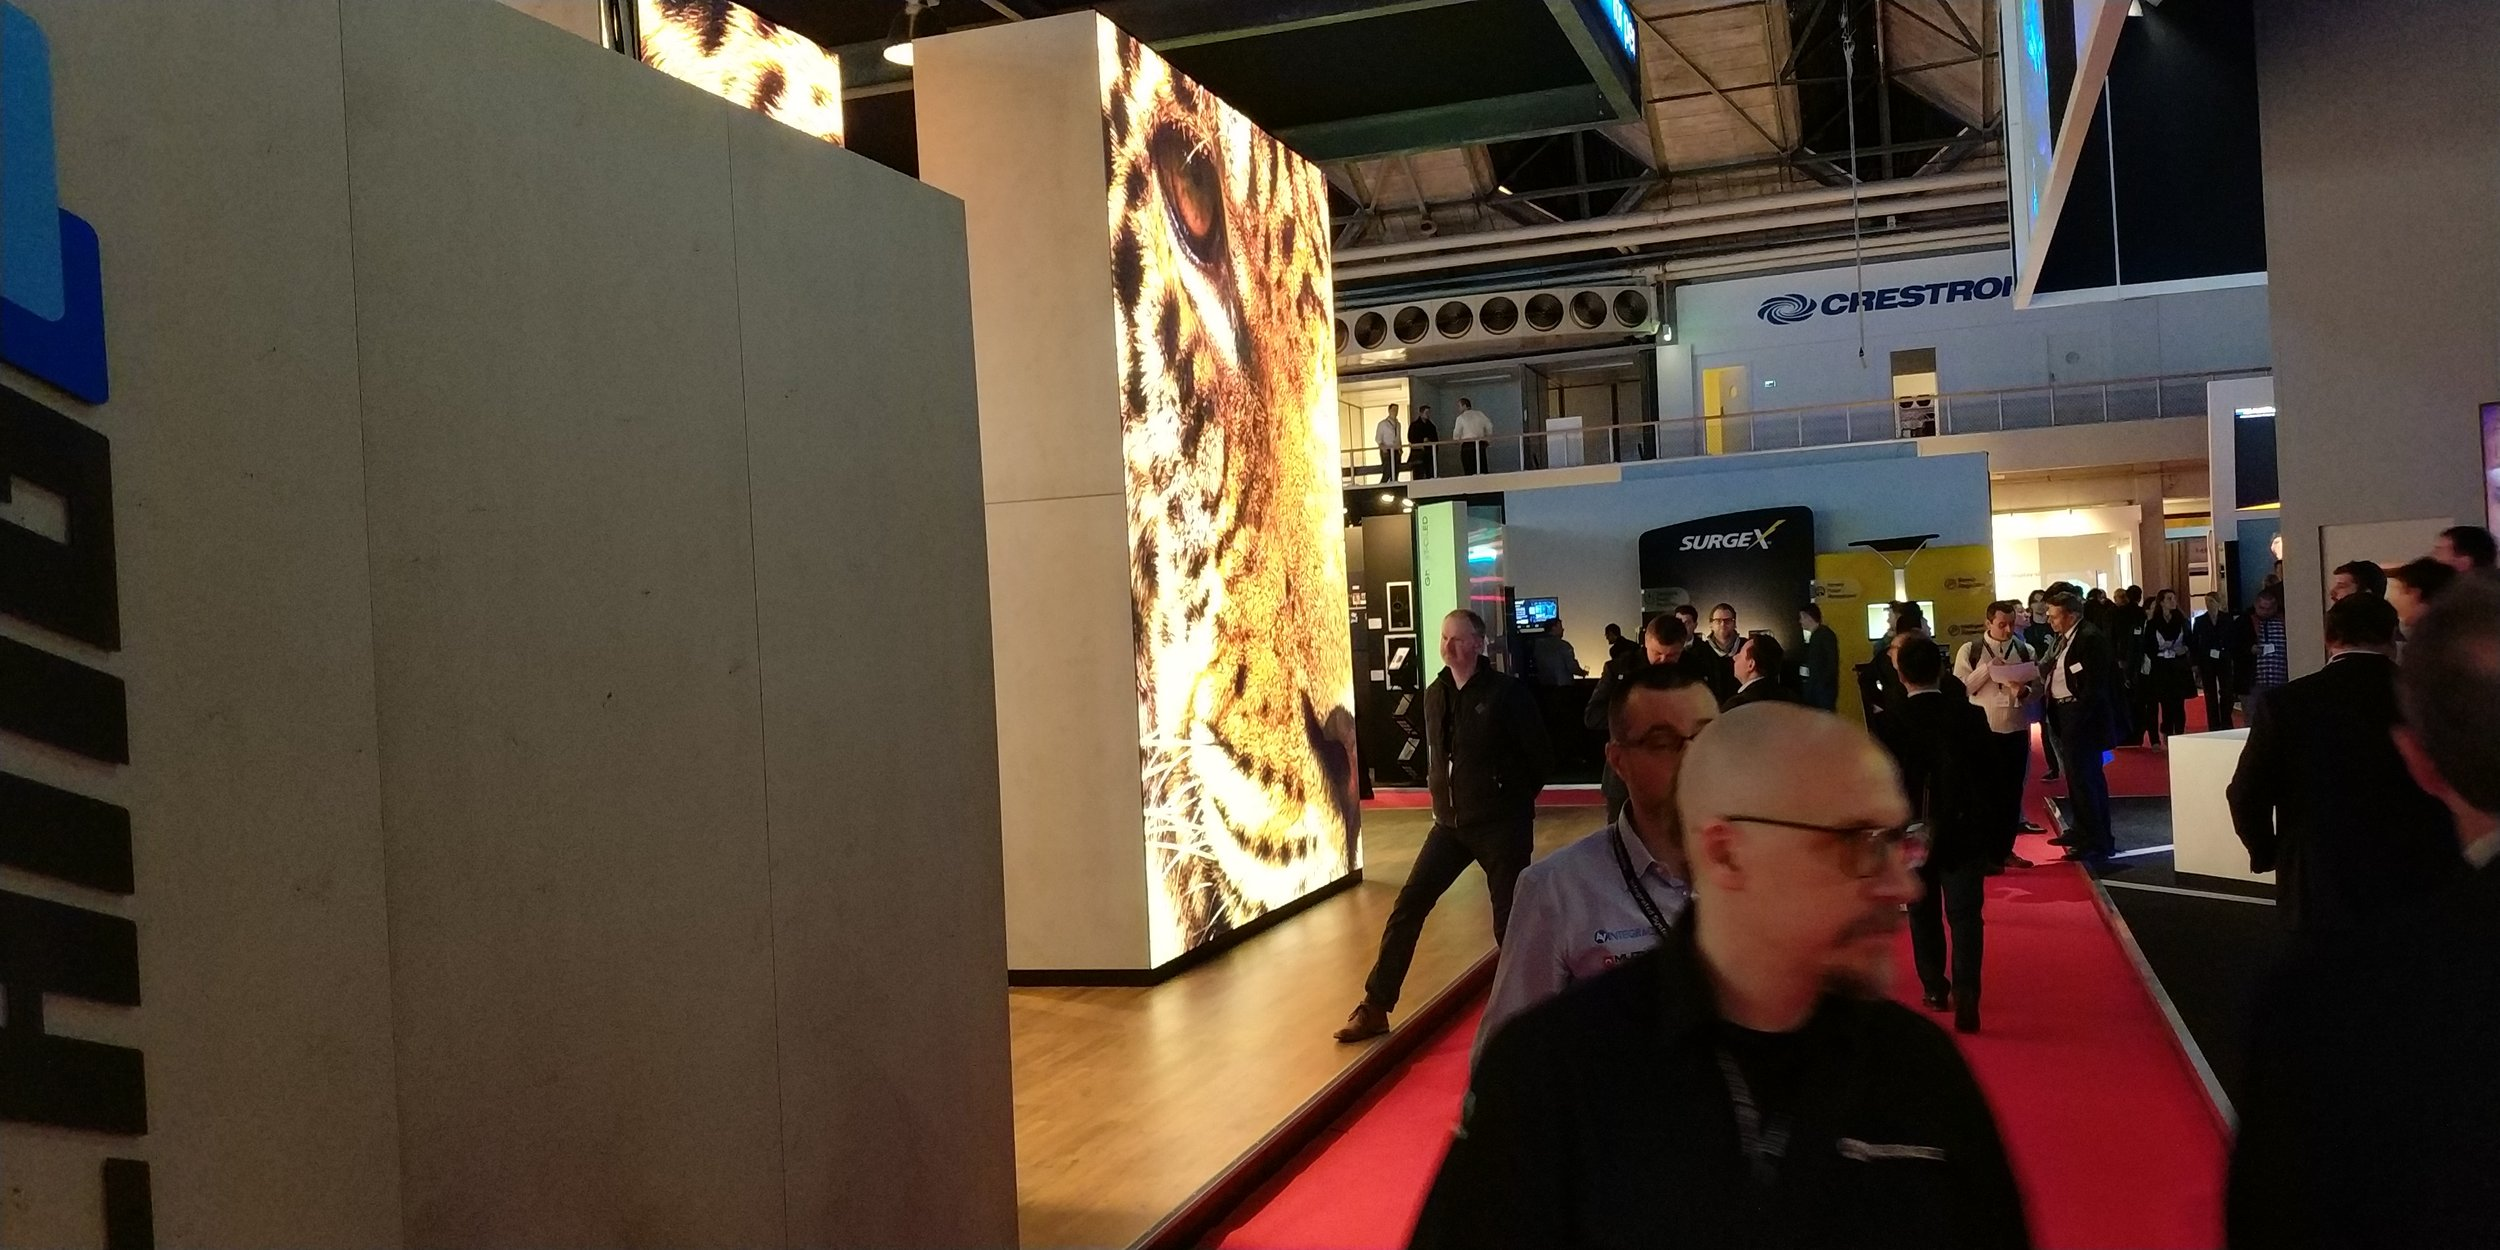 Huge Display LED or Projection